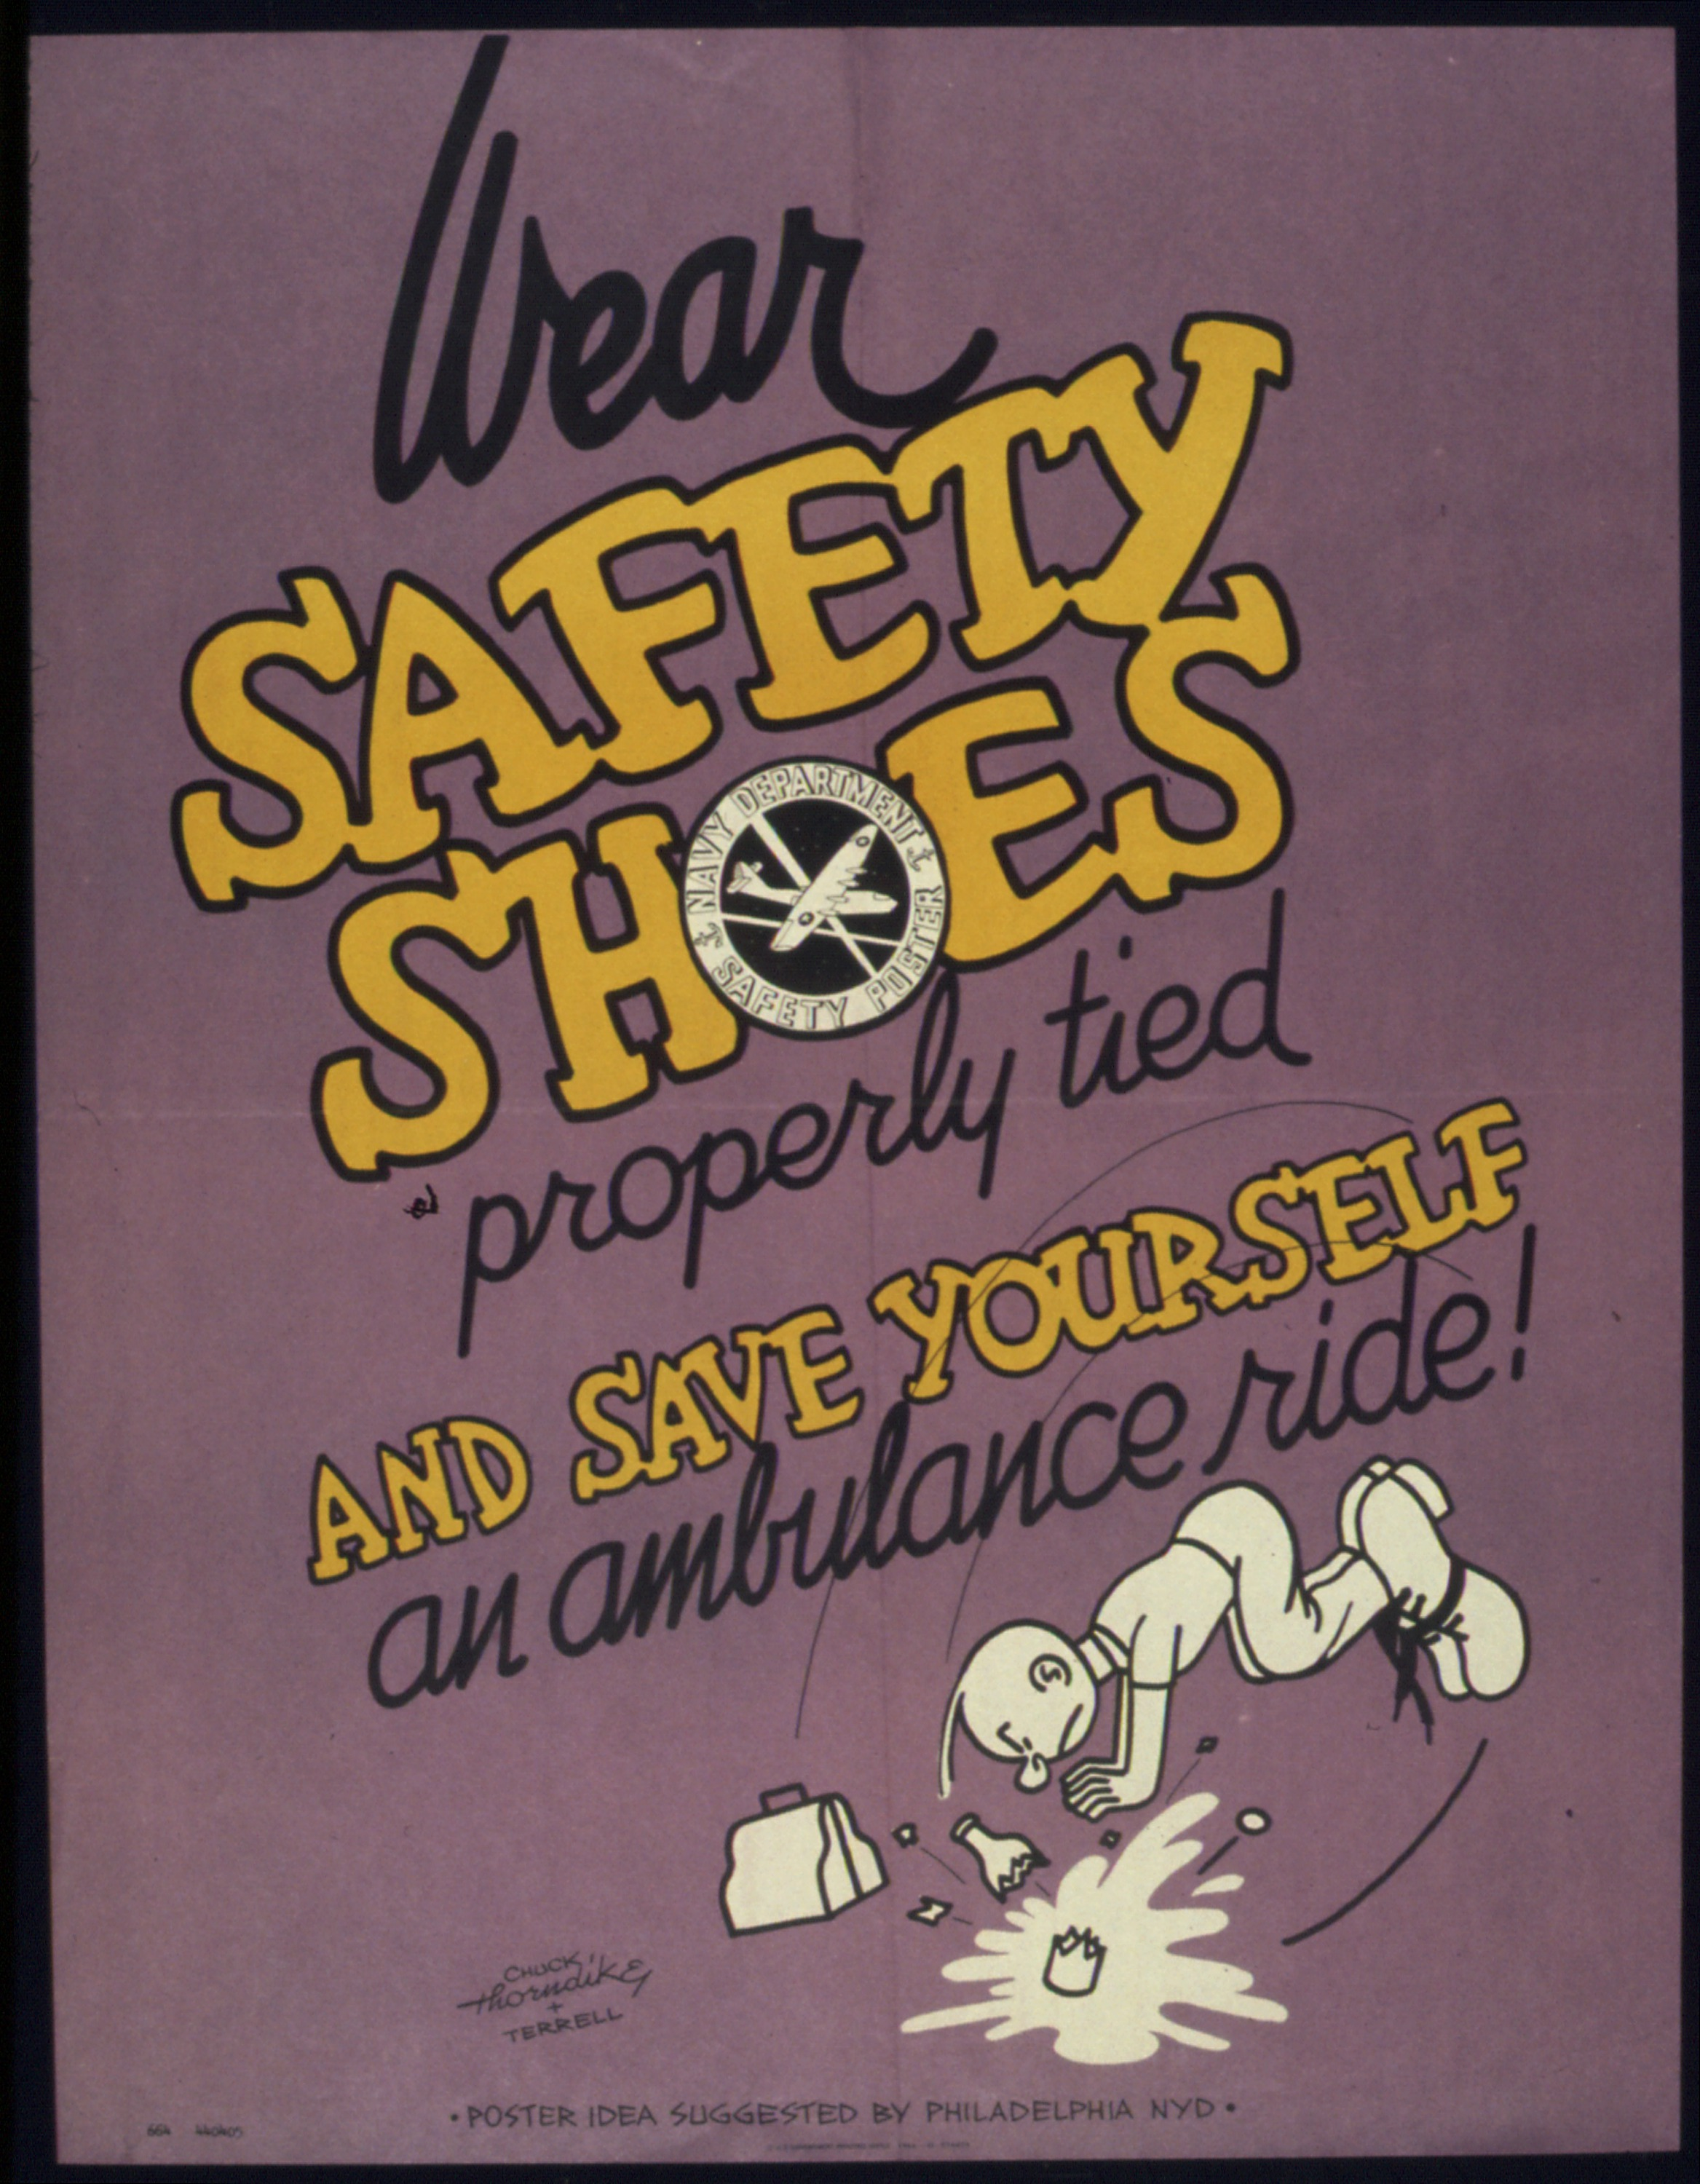 file  u0026quot wear safety shoes  properly tied and save yourself an ambulance ride u0026quot  - nara